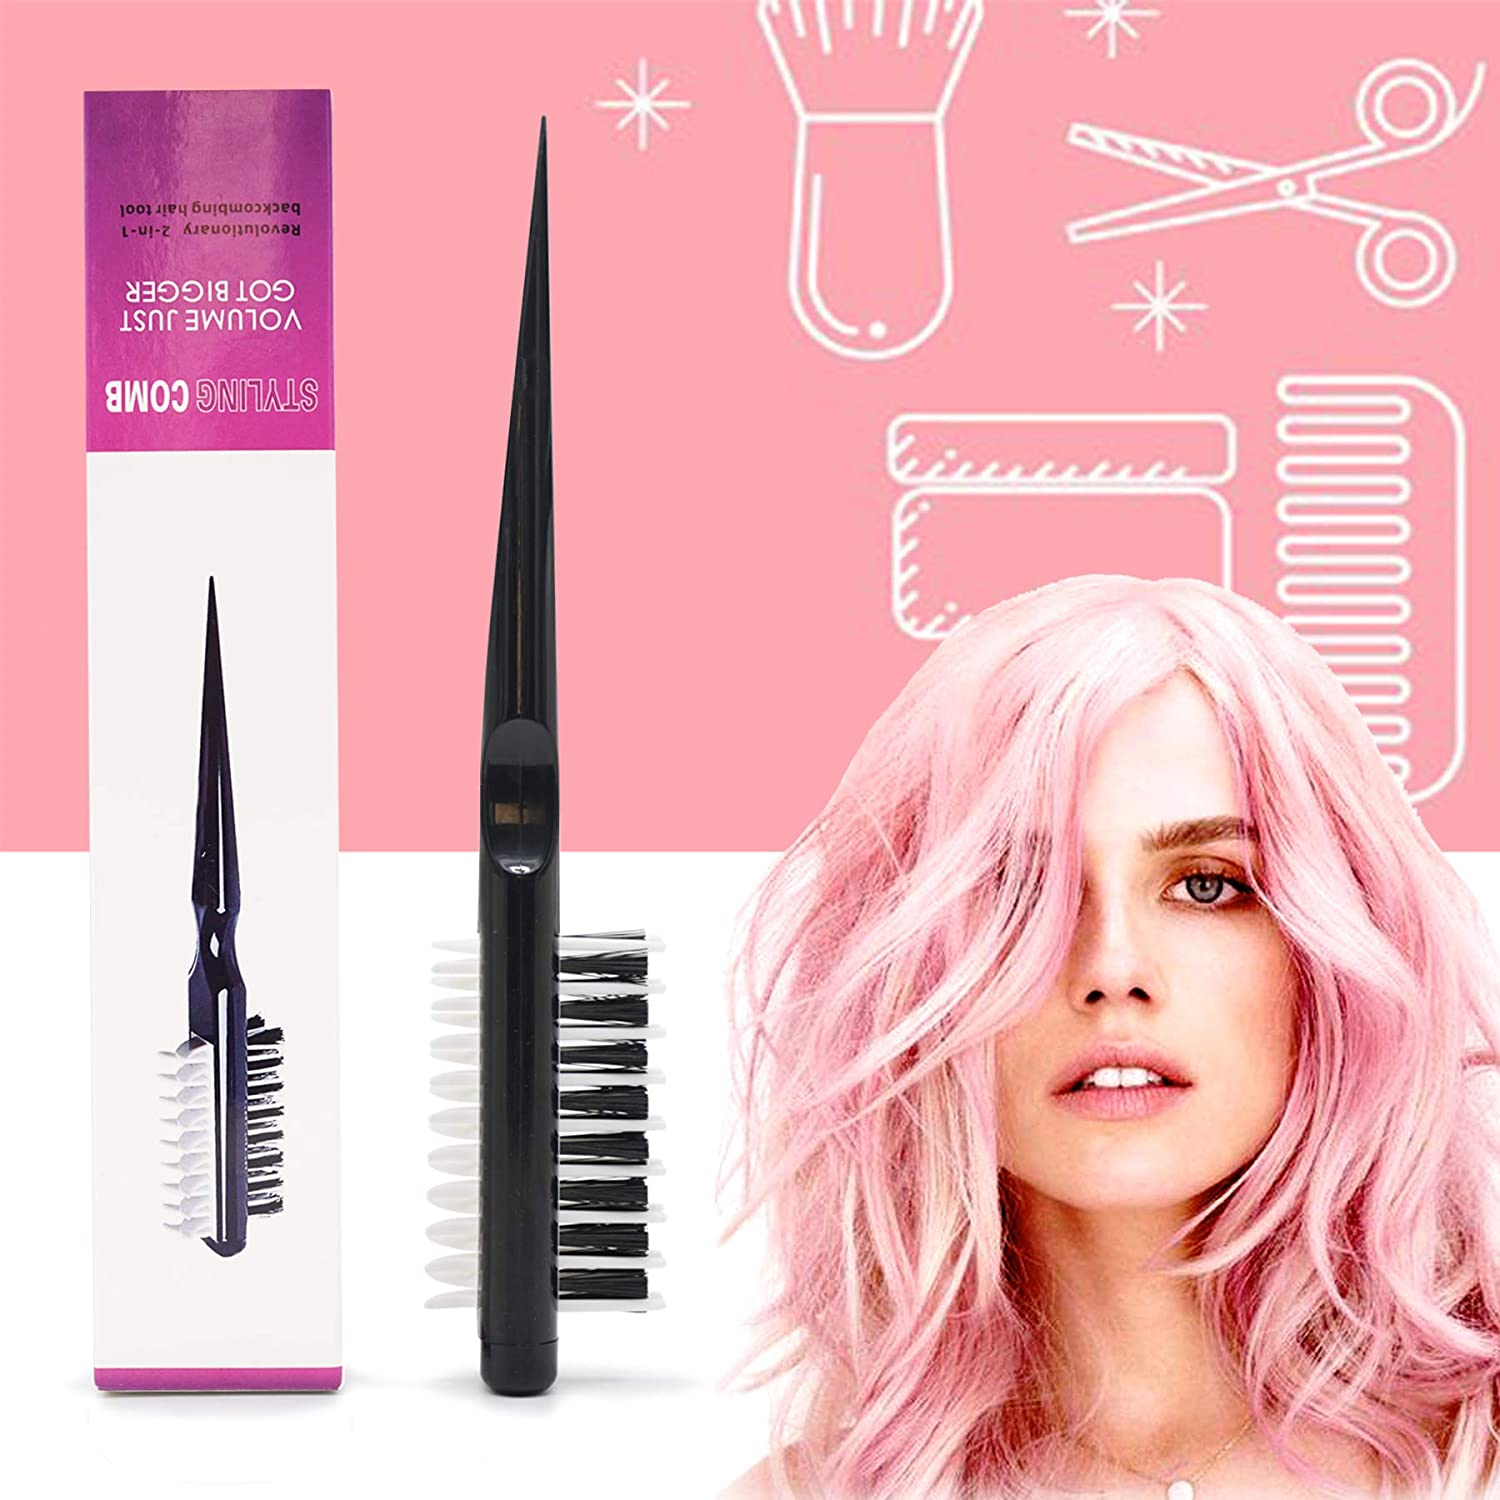 Hair Style Comb, Portable Hair Styling Comb, Styling Comb Brush Instant Hair Volumizer, Multifuncional Combing Brush with Shark Back Double-side Design, Hair Styling Tool for All Hair Types Women Men